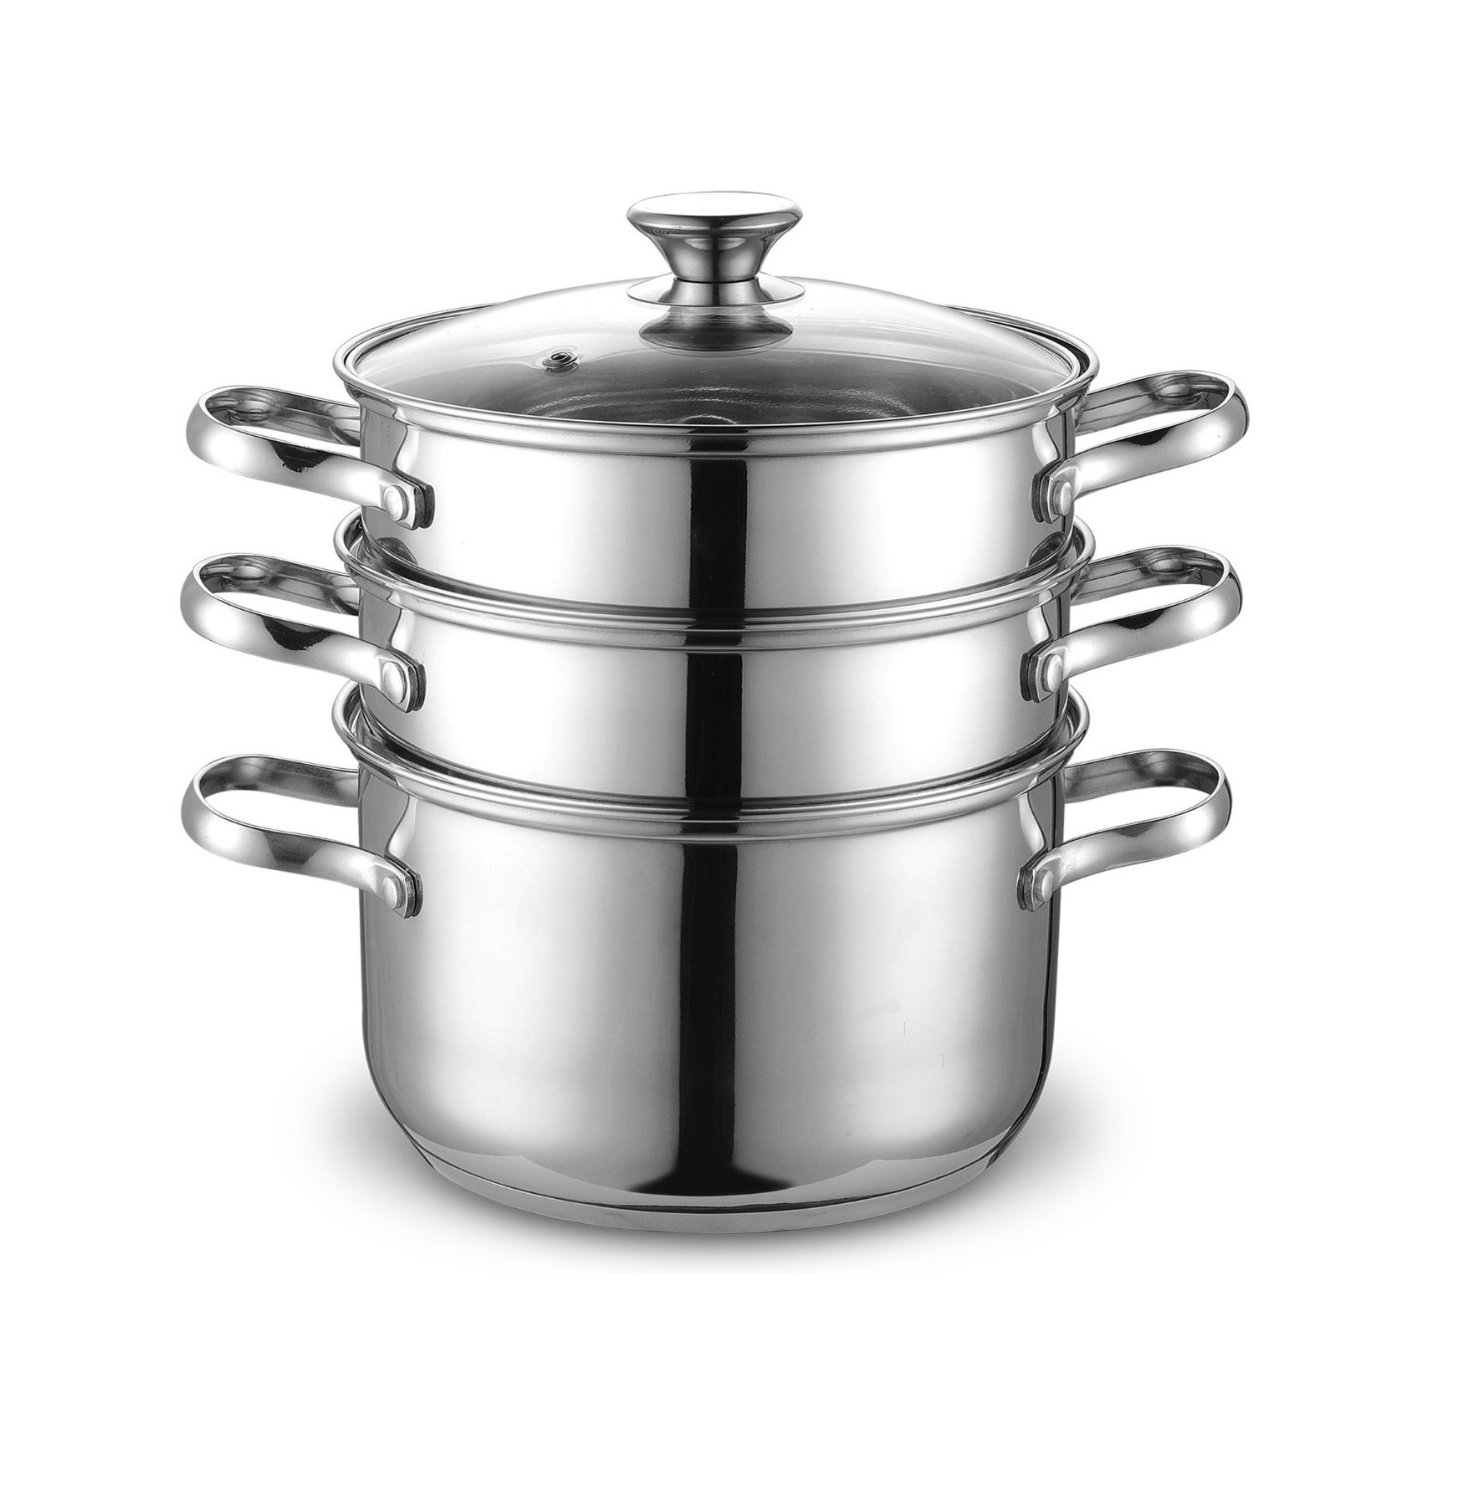 <span style='font-size: 1.1em; color: #4B9000'>Cook N Home Double Boiler and Steamer Set</span>.<br /><br /> Cookware is stainless steel, mirror polished for long last shine, encapsulated bottom is designed for even heat distribution.